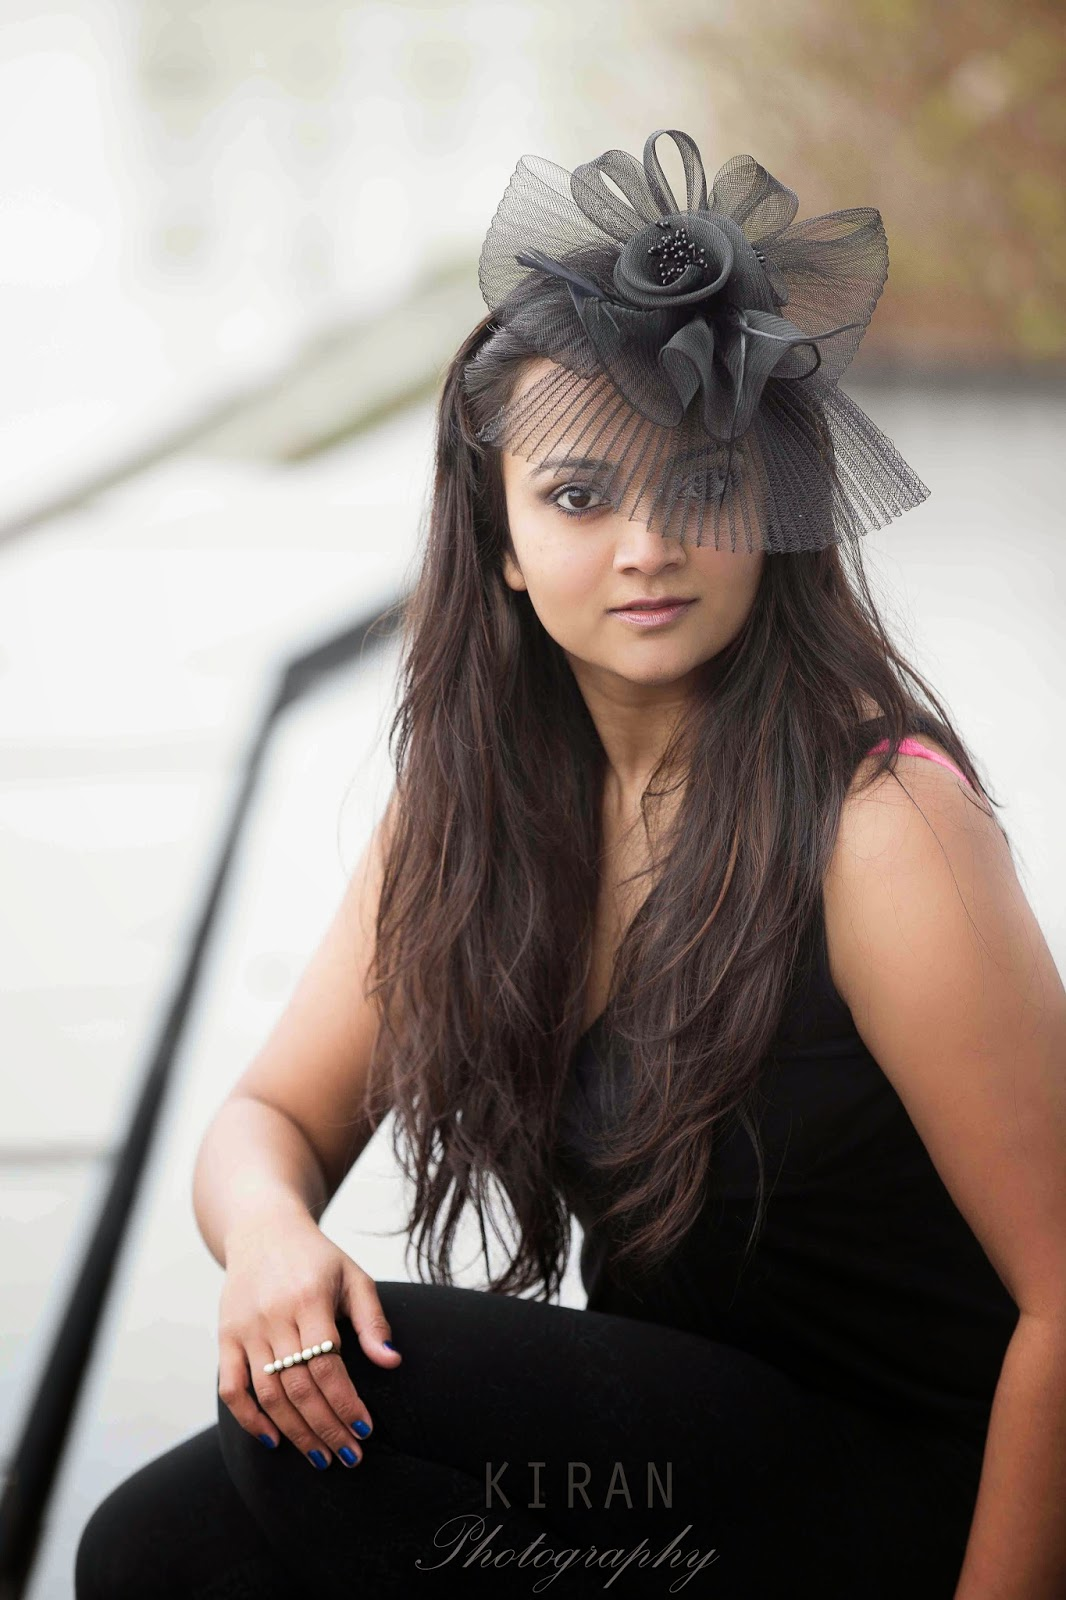 head piece, hair accessory, Hair styles, Hair fashion, Indian girl with hair accessory, Bold hair accessory, Ananya Kiran, black leggings with black top, Seattle space needle pictures